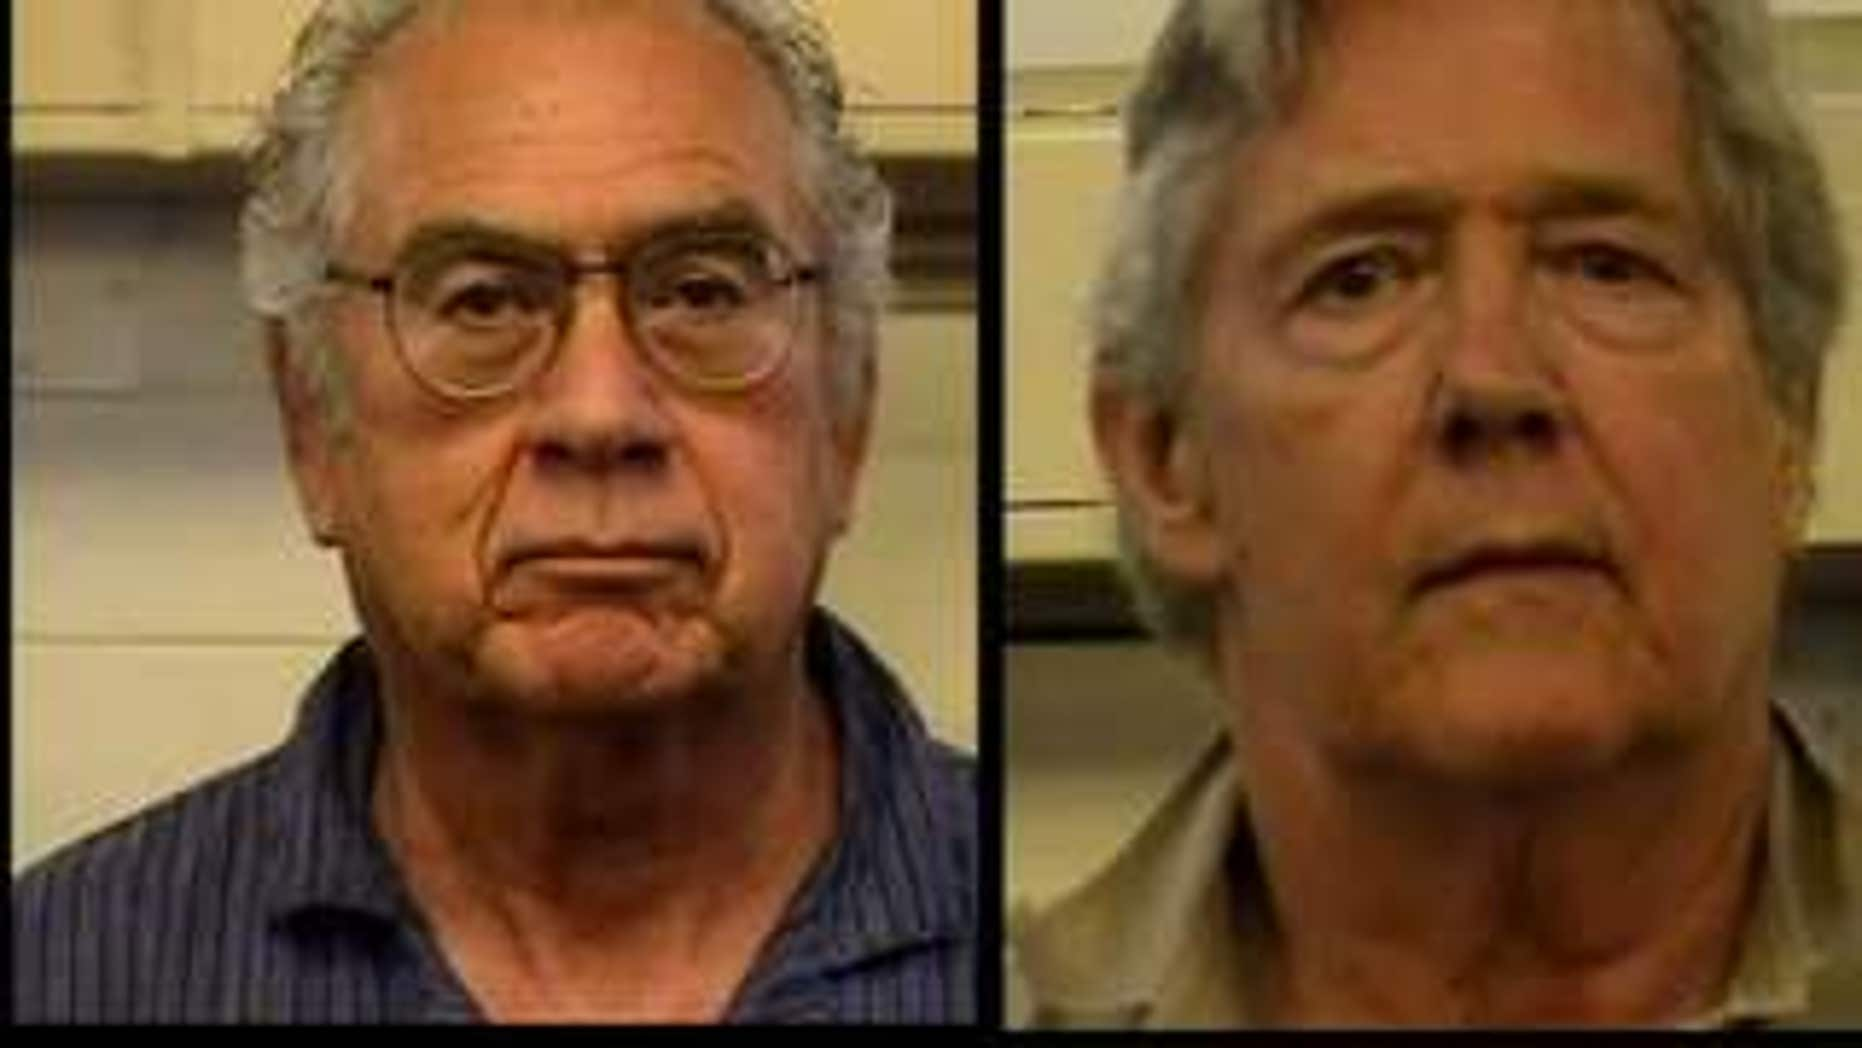 Former University of New Mexico Interim President F. Chris Garcia (l.) and retired New Jersey professor David Flory were arrested for their involvement in an online brothel - where prostitutes and johns never actually hooked up. (AP)